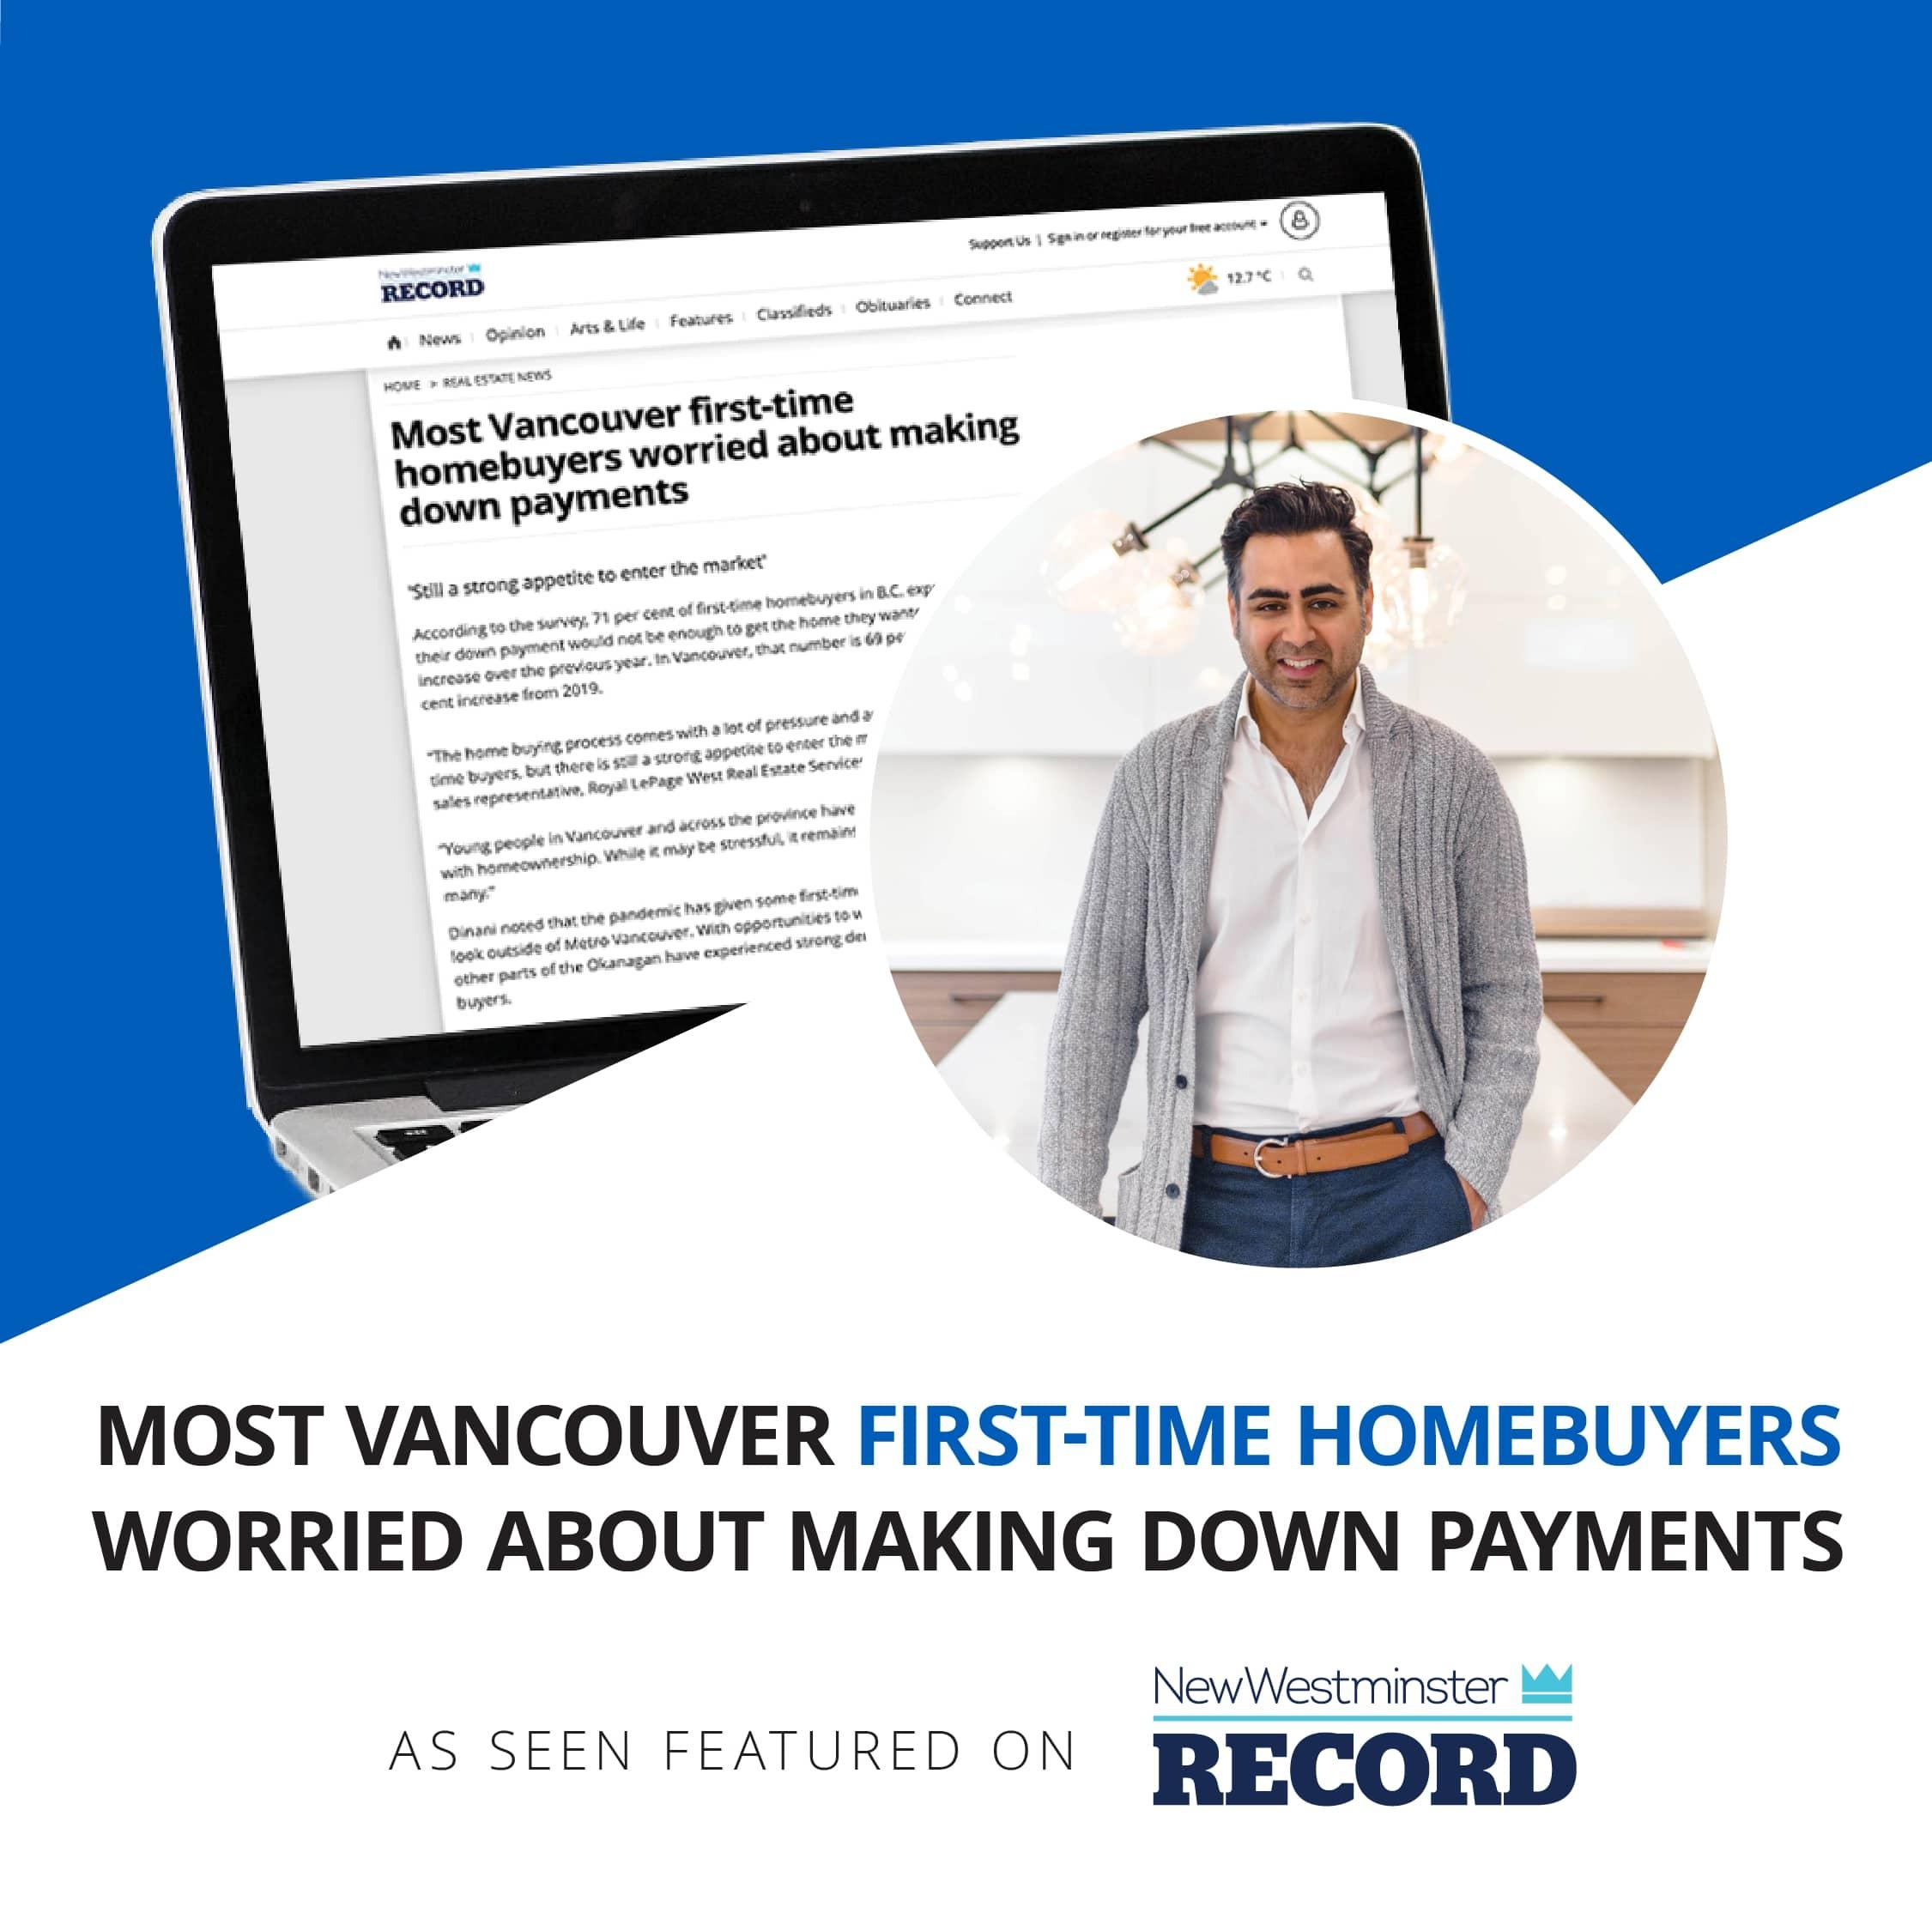 New Westminster Record: Adil Speaks with Royal LePage and Sagen Regarding First Time Home Buyers, May 15, 2021